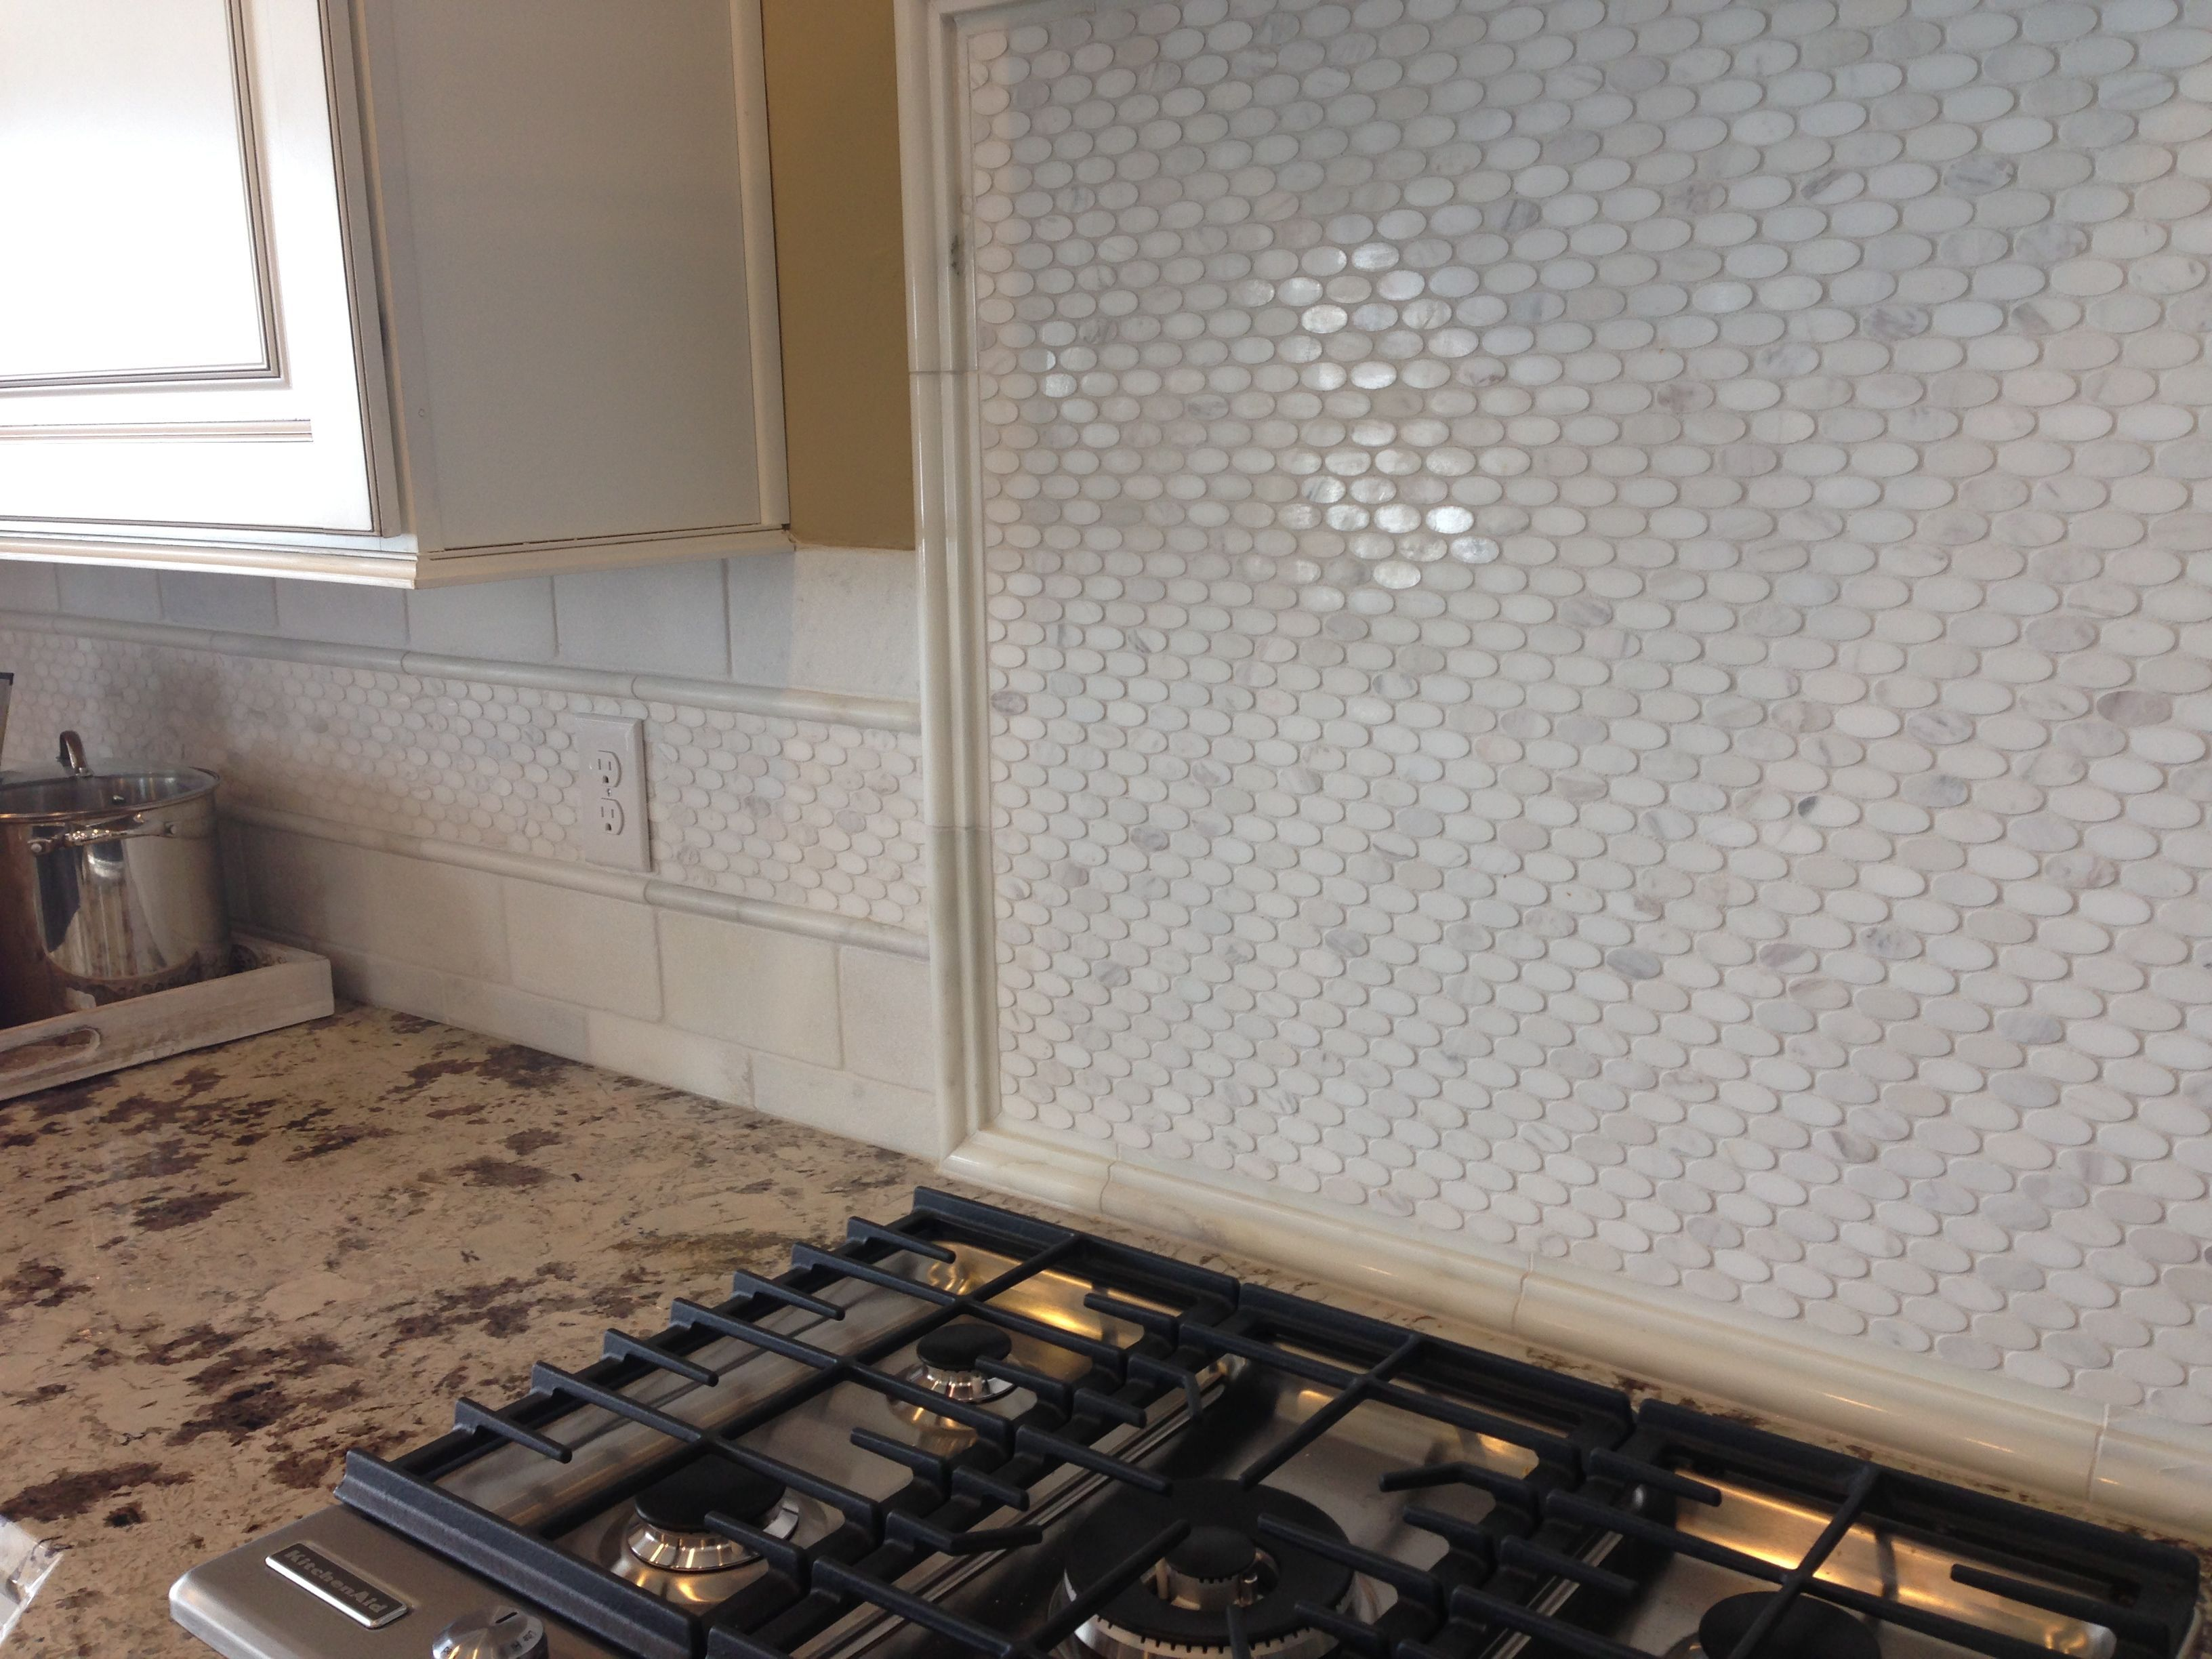 Modern Mosaic Tile Backsplash Decor Oval Backsplash  Tile Pinterest  Modern Kitchen Backsplash .